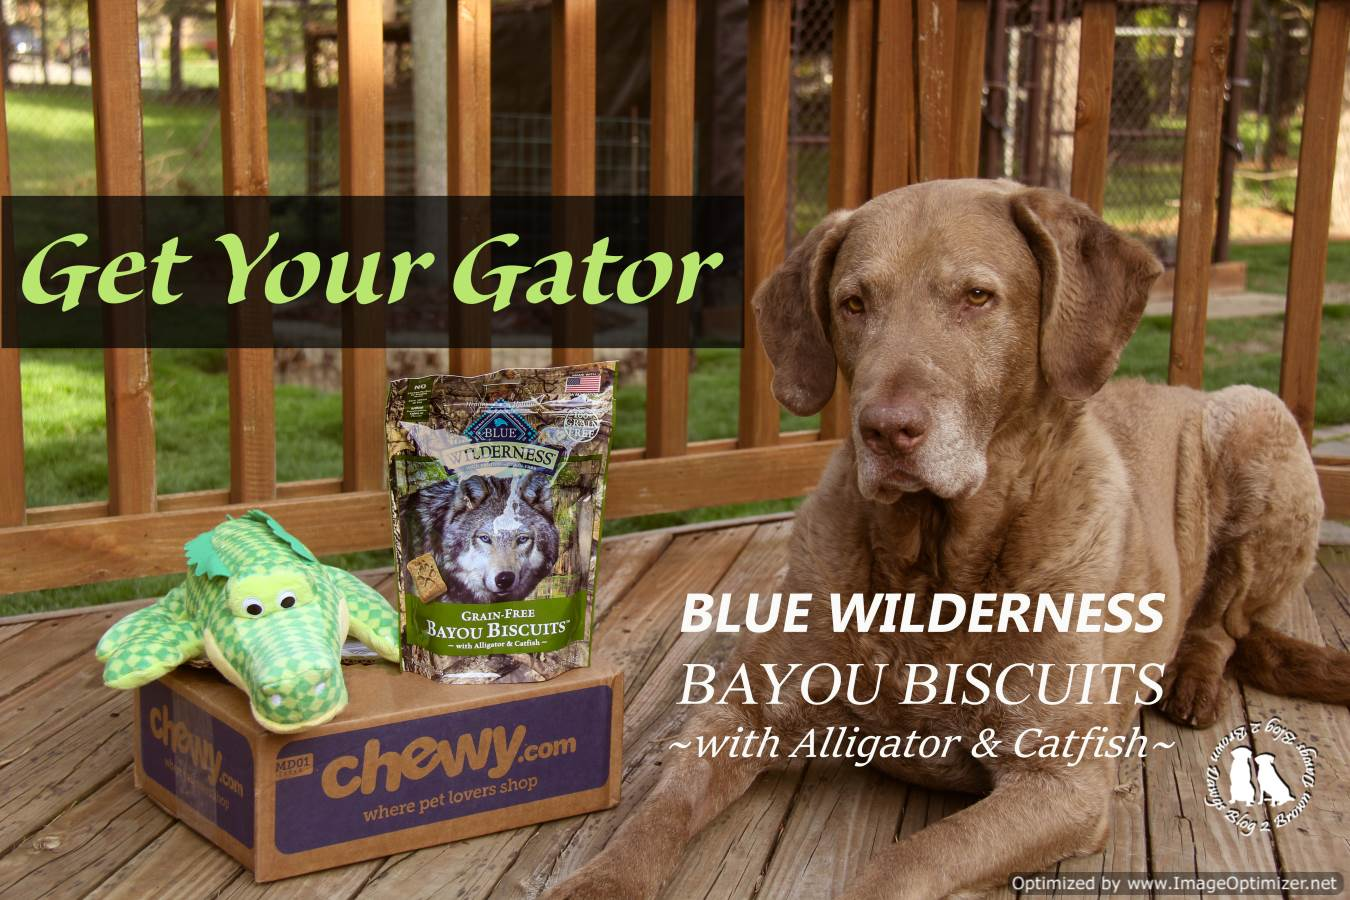 Get Your Gator